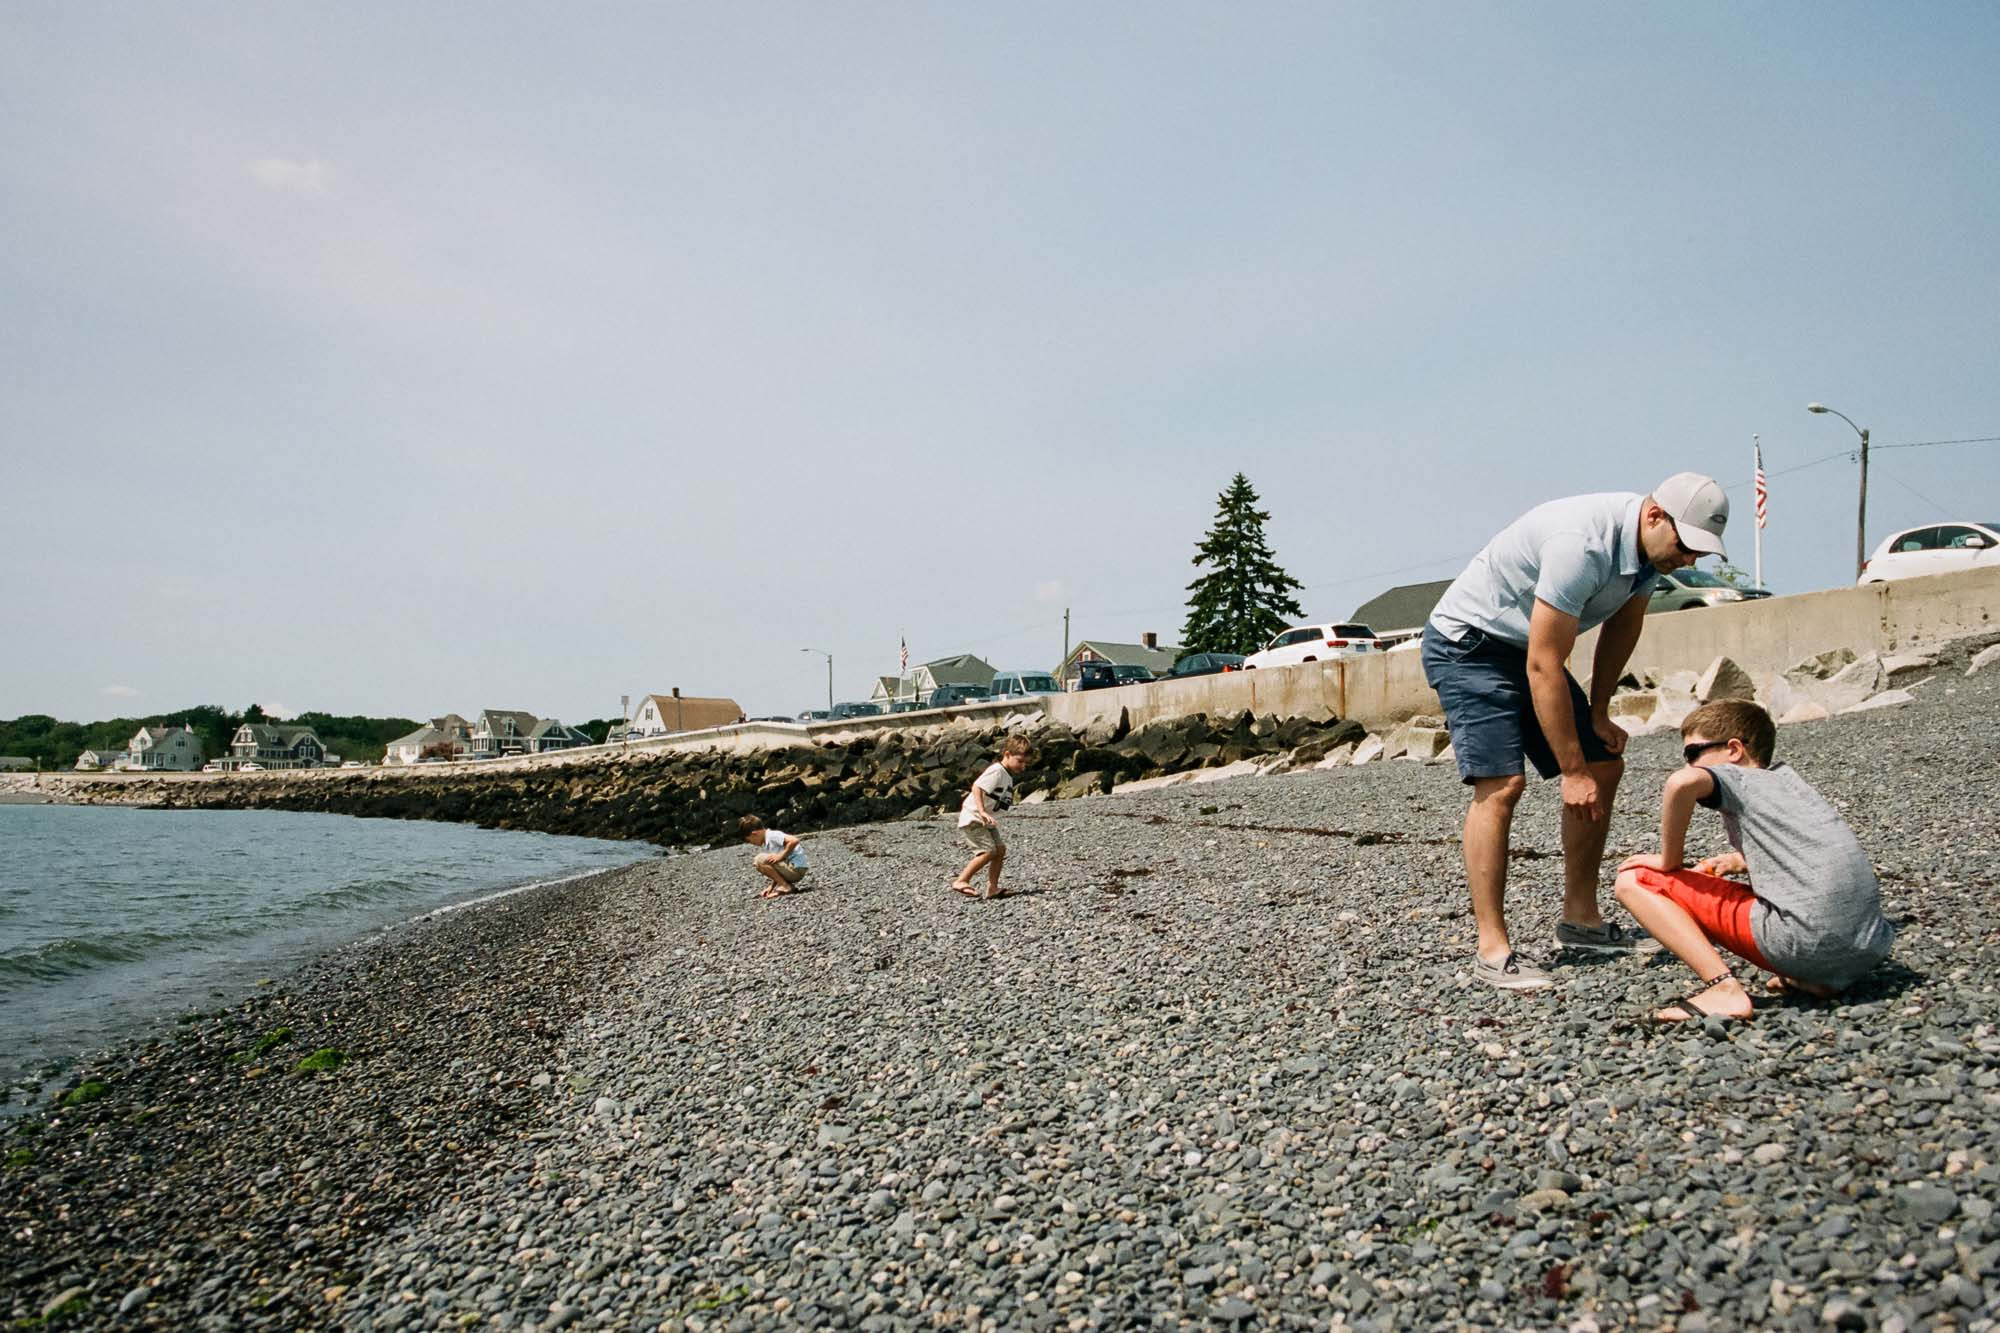 film-photos-day-trip-to-kennebunkport-maine-by-megan-cieloha